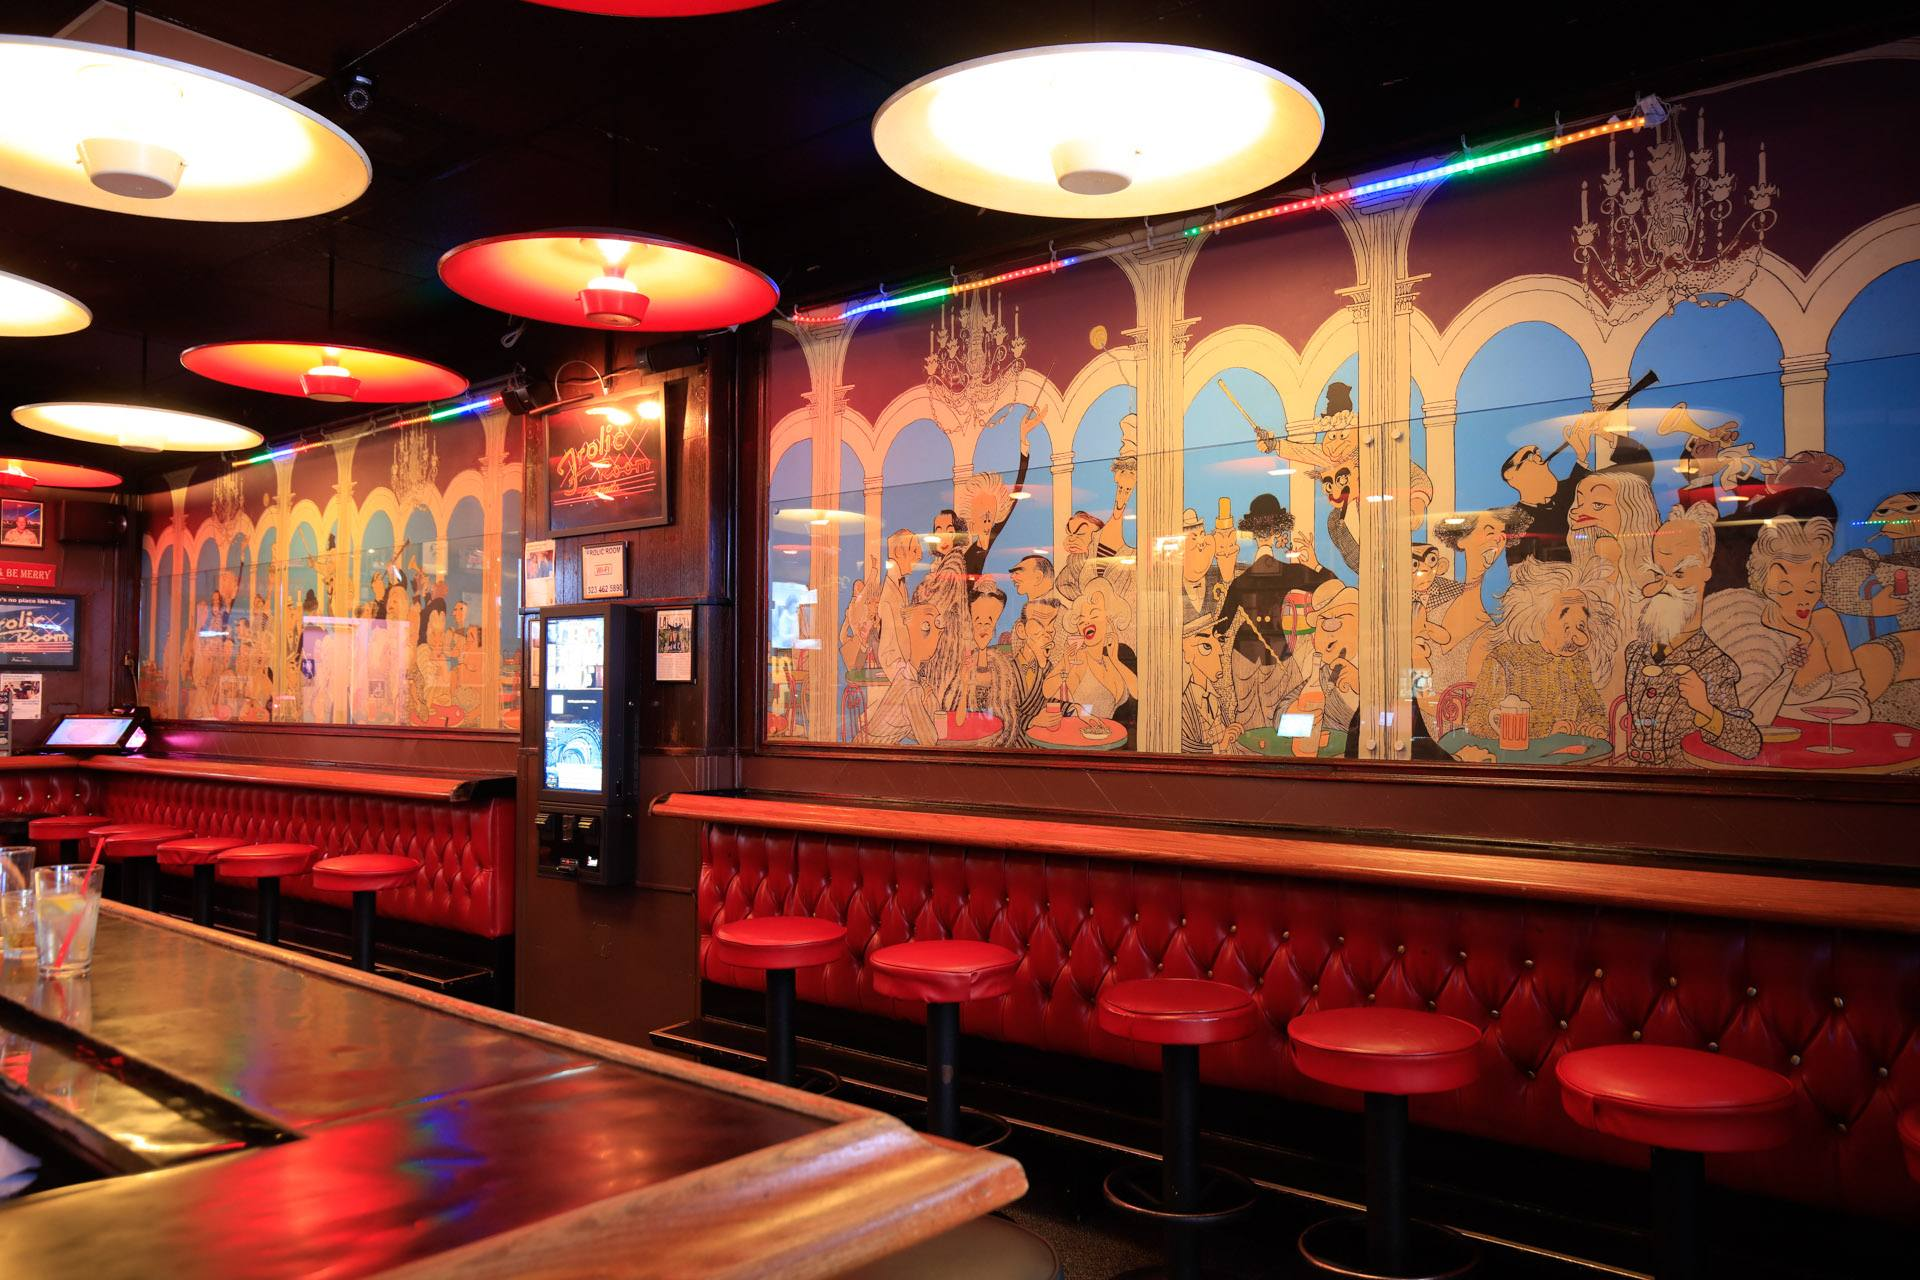 Hirschfeld's celebrated mural of celebrity caricatures inside the Frolic Room